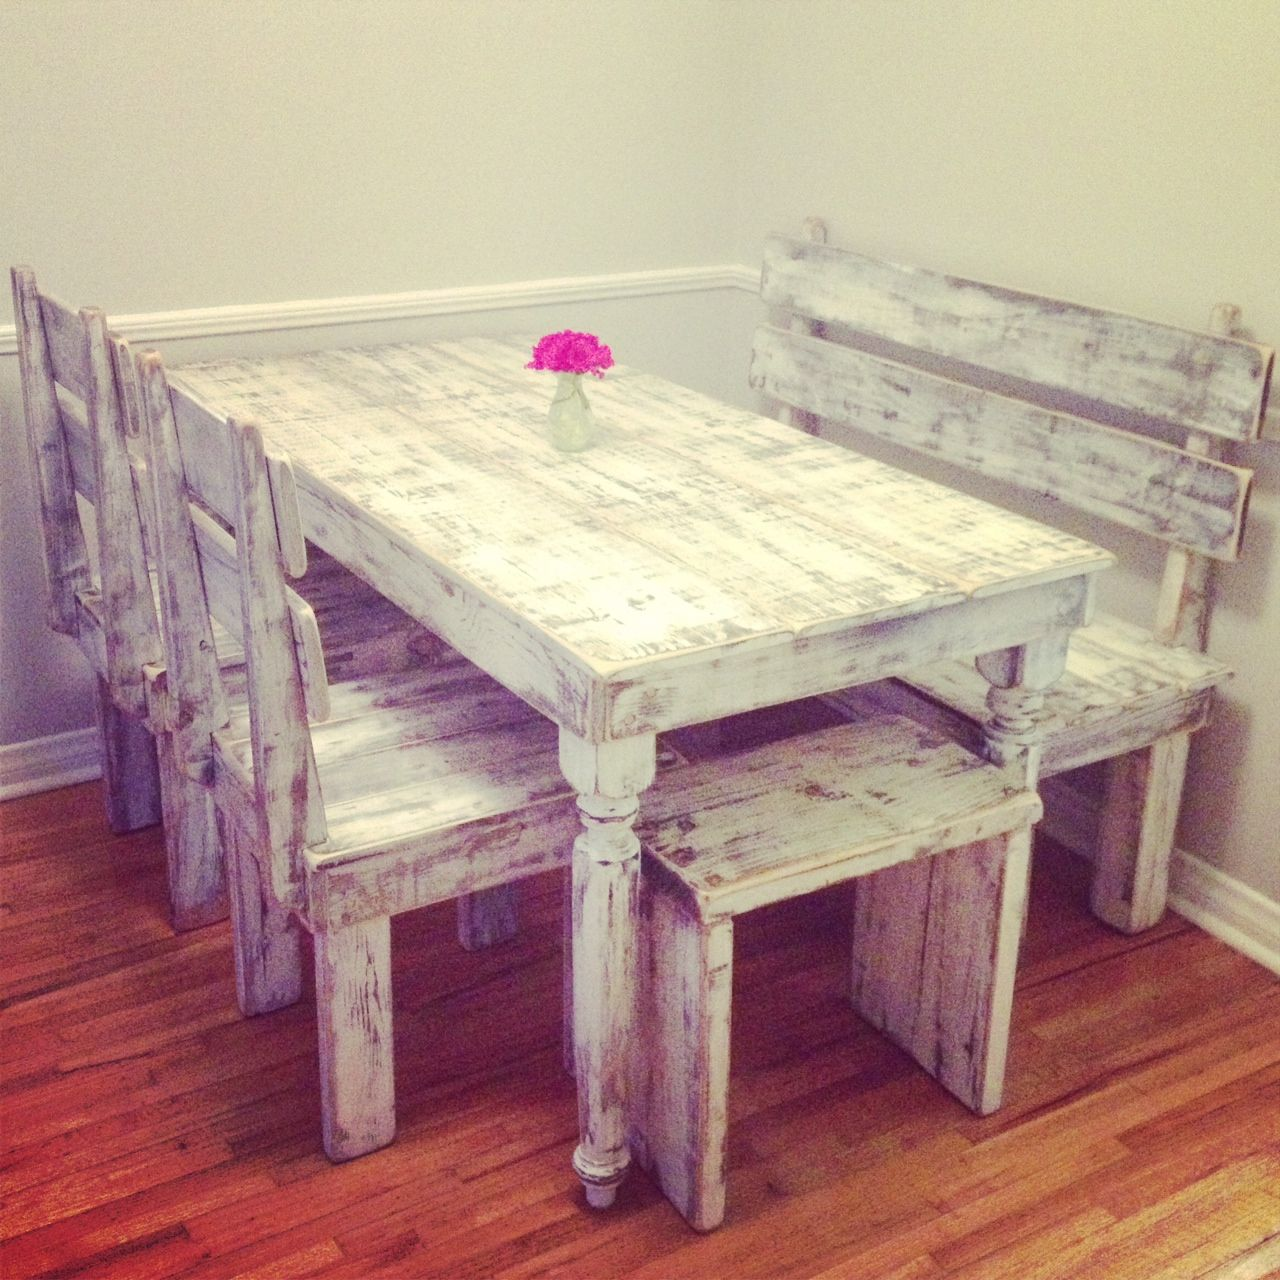 Kitchen-Table.jpg 1,280×1,280 pixels | A Do it yourself projects ...